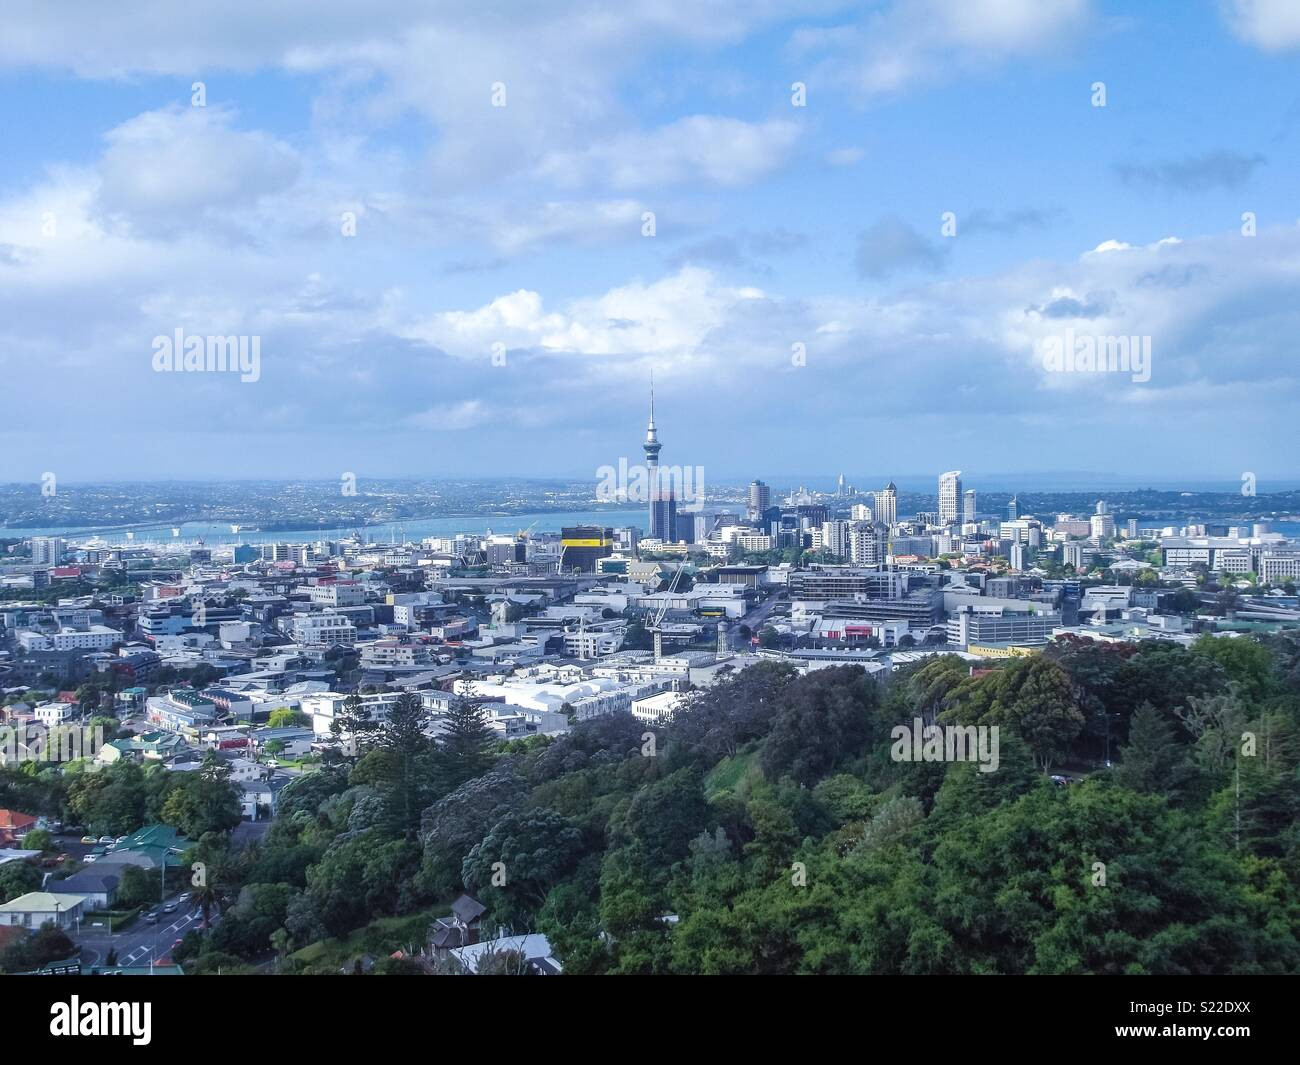 A view of Auckland from Mt Eden, New Zealand. - Stock Image